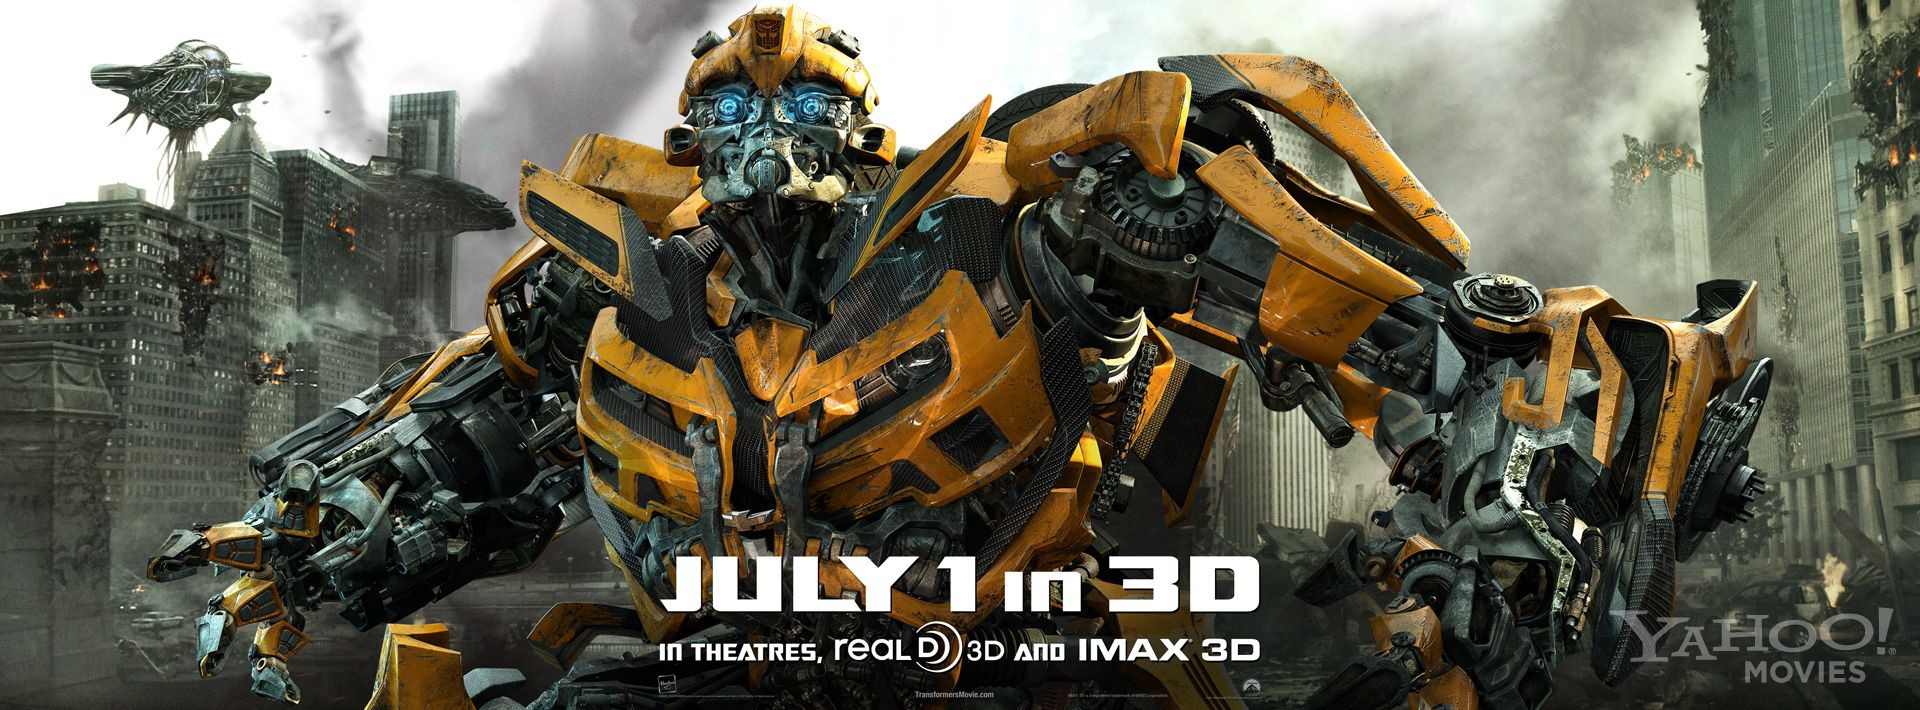 Quadrilogia Transformers 1080p Bluray Dublado – Torrent DownloadTransformers 1, 2, 3 e 4 BRRip BDRip DualAudio (2014)